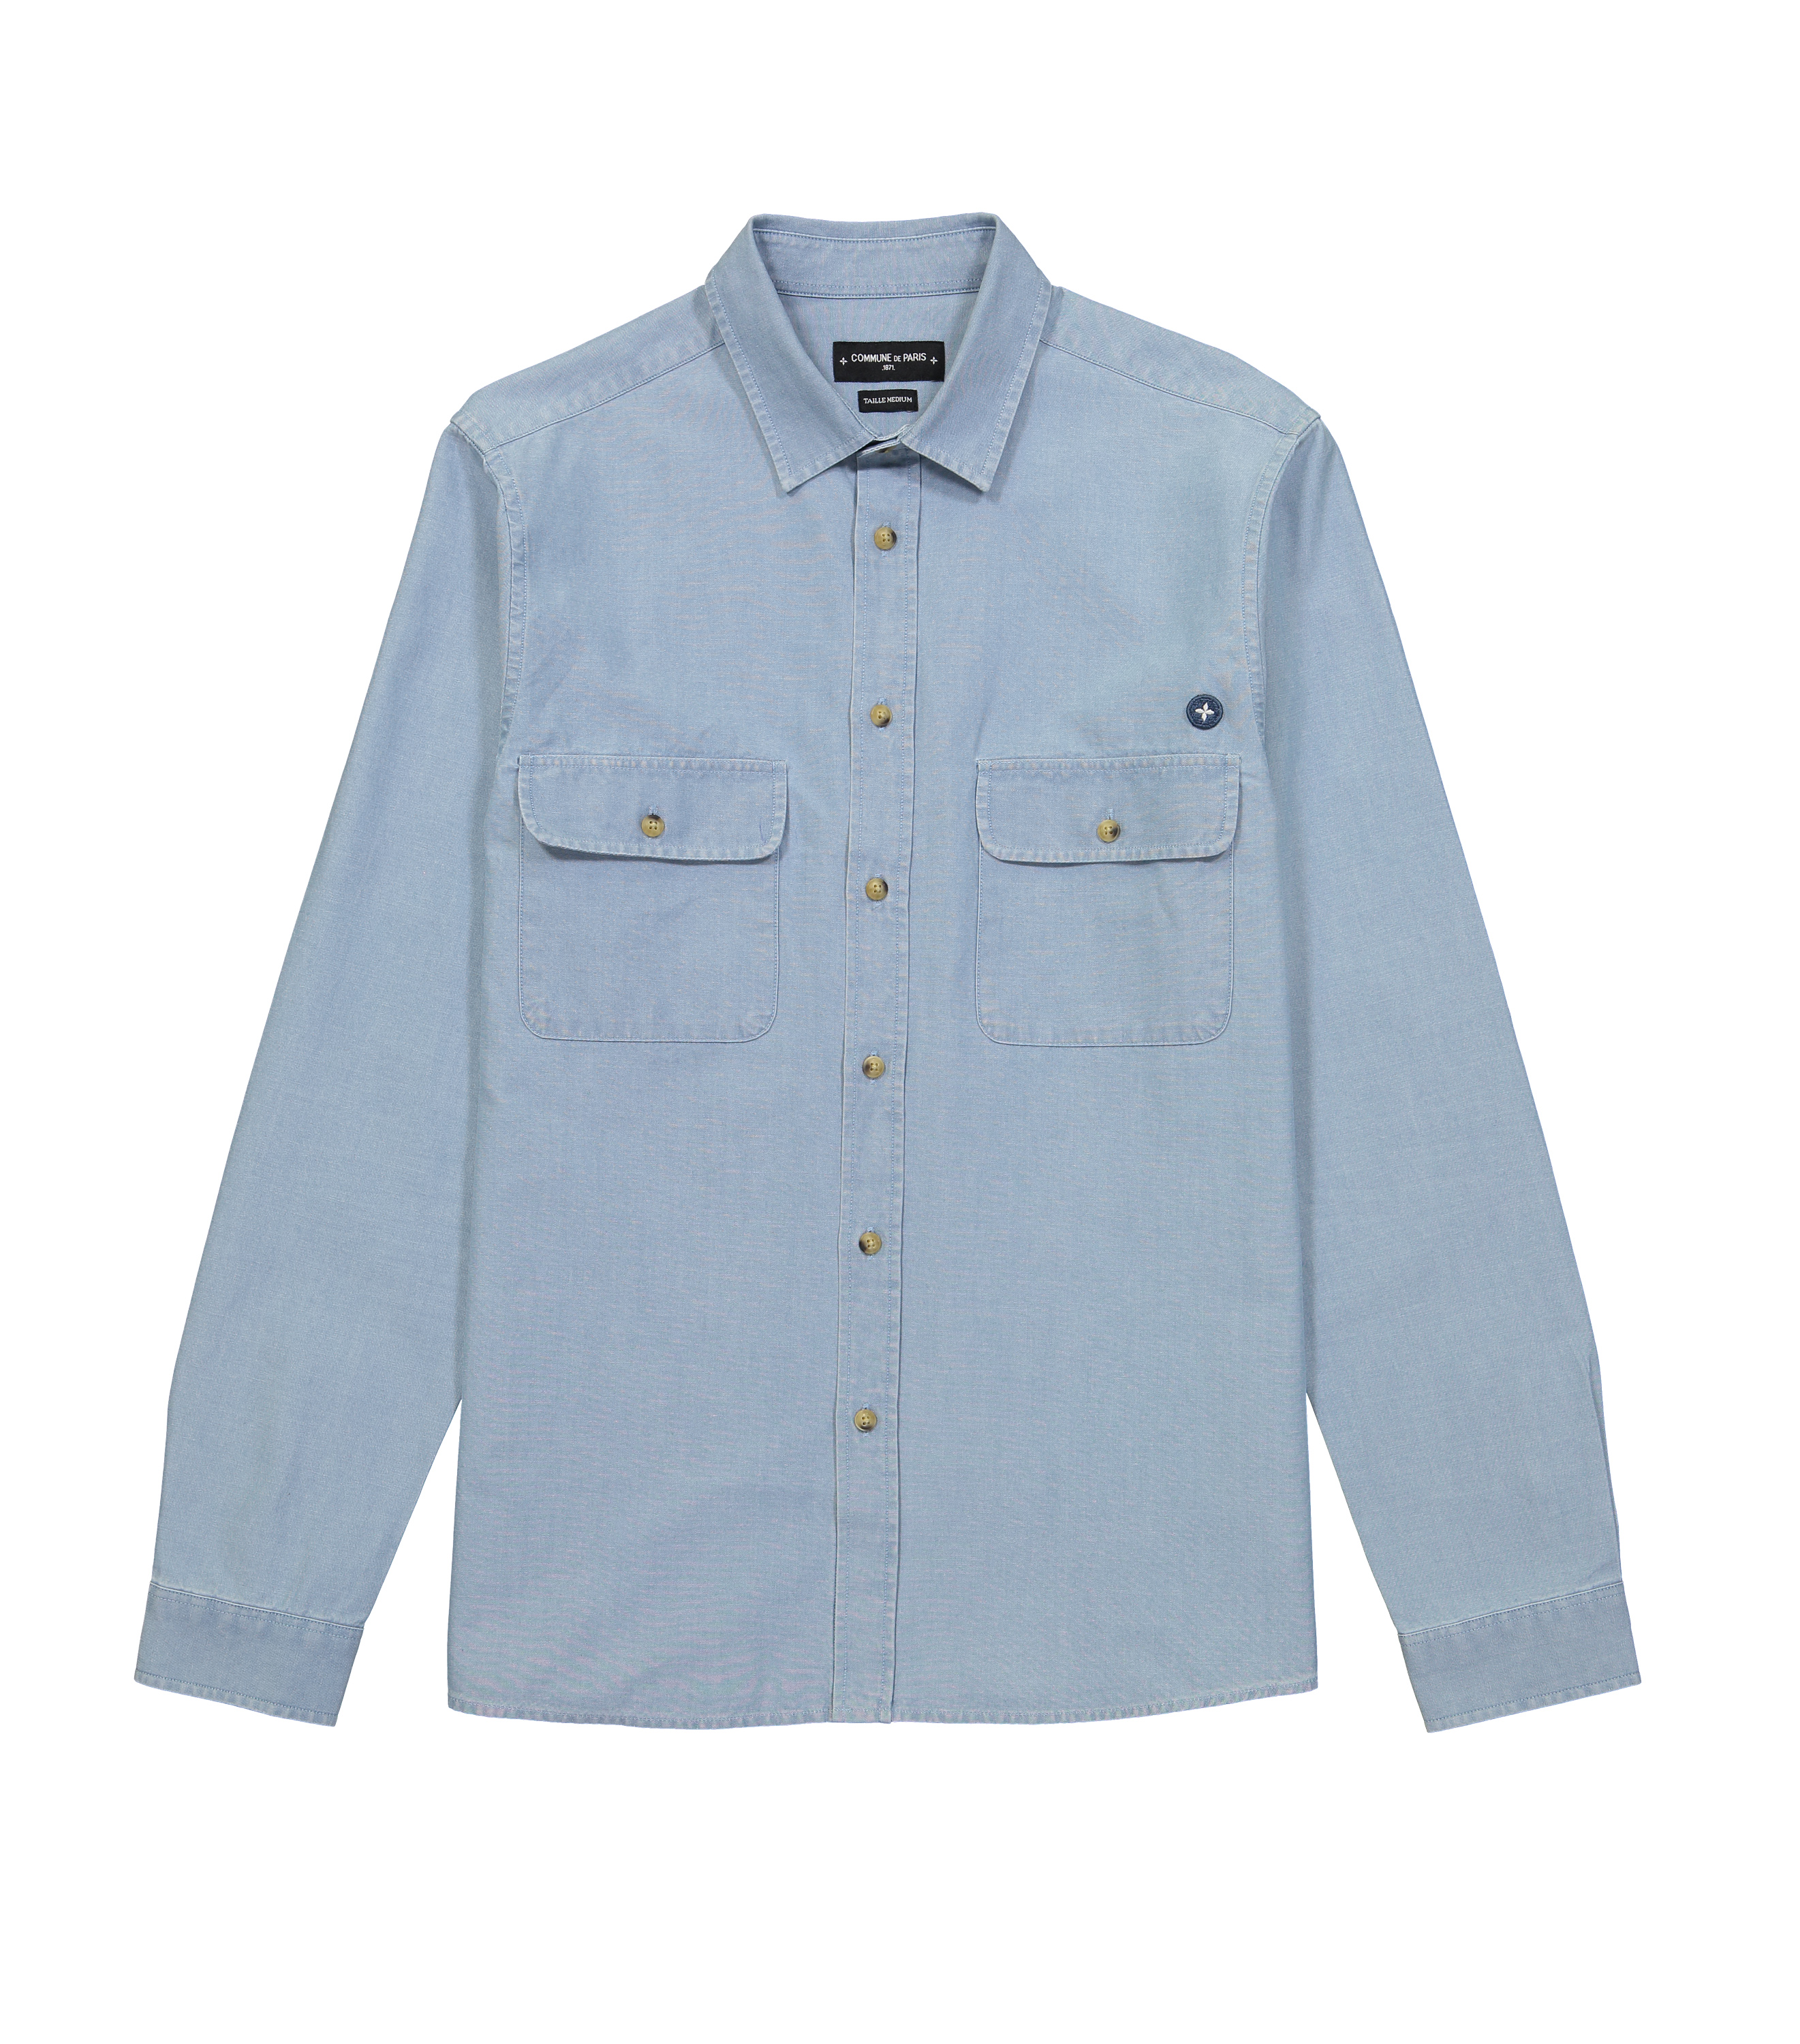 SHIRT  FERDINAND - Bleached denim